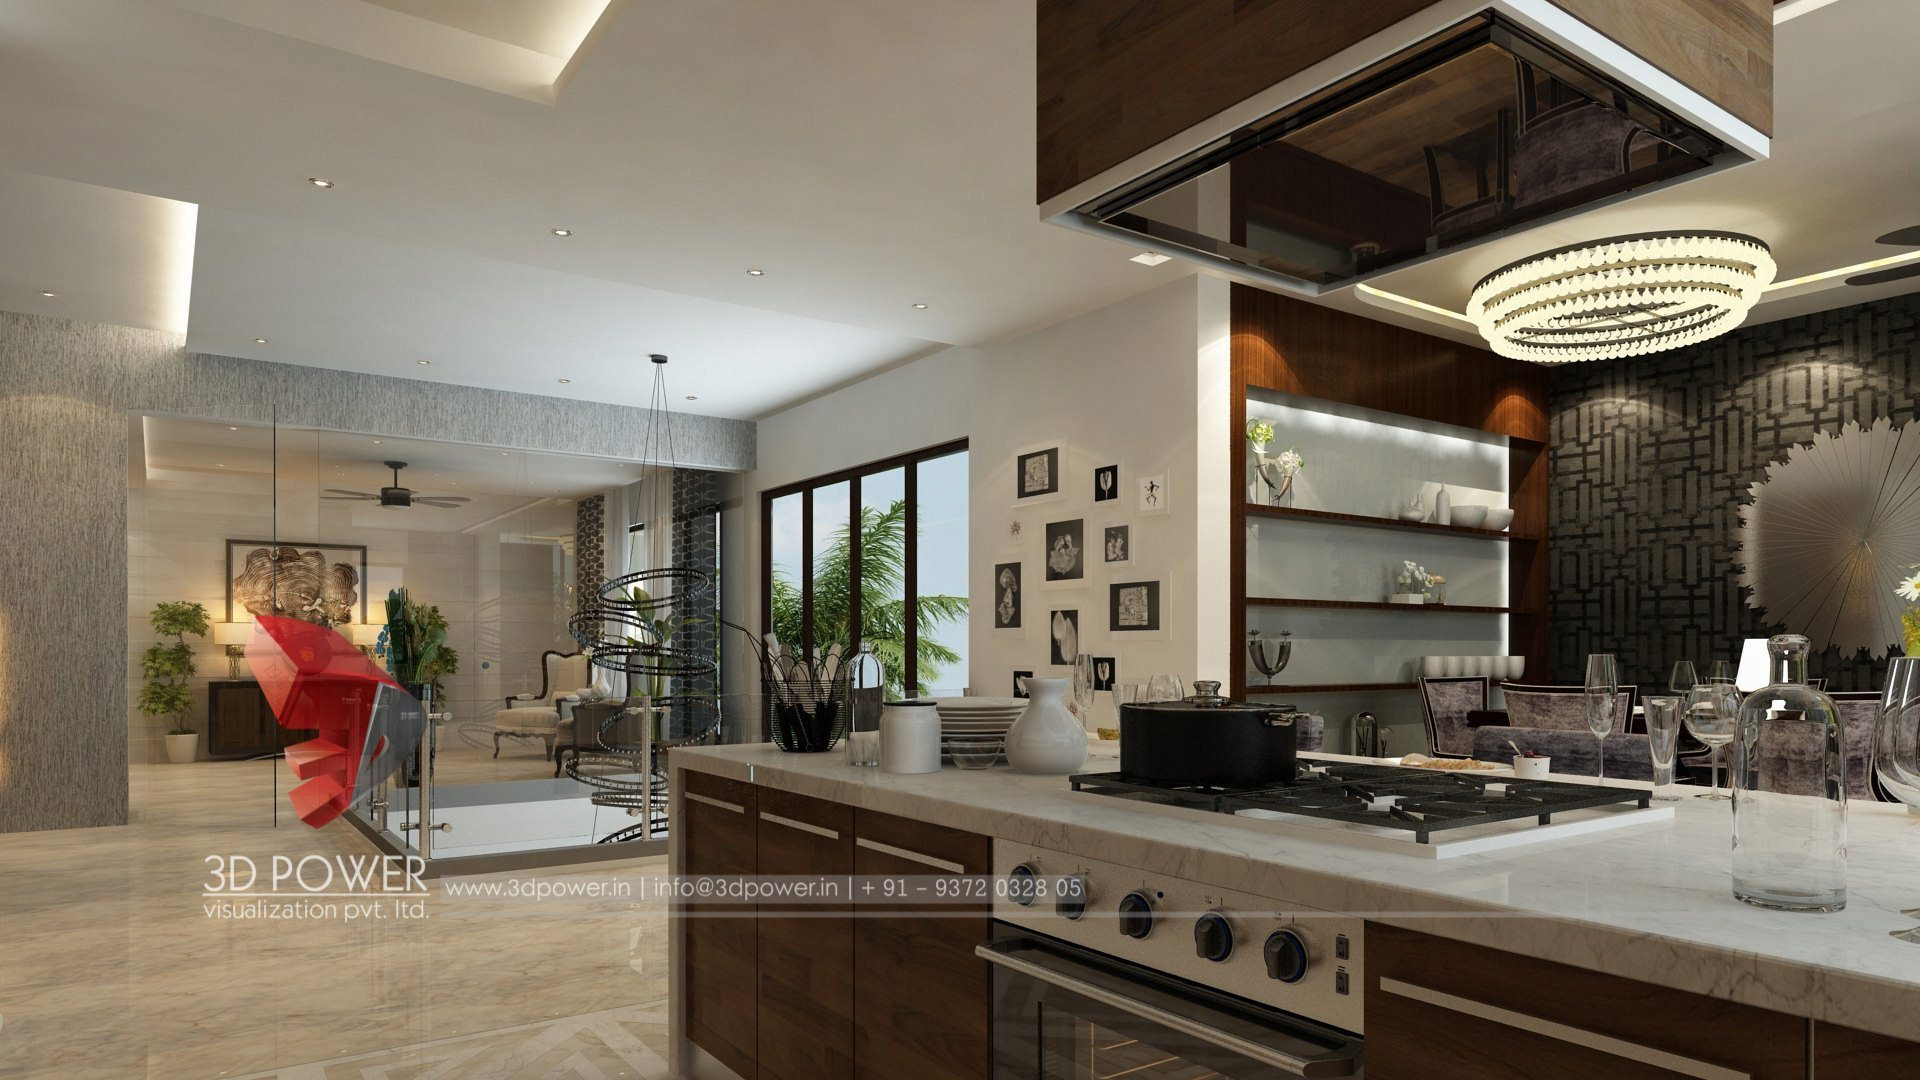 Commercial Kitchen 3d Design 3d Interior Design Rendering Services Bungalow Home Interior